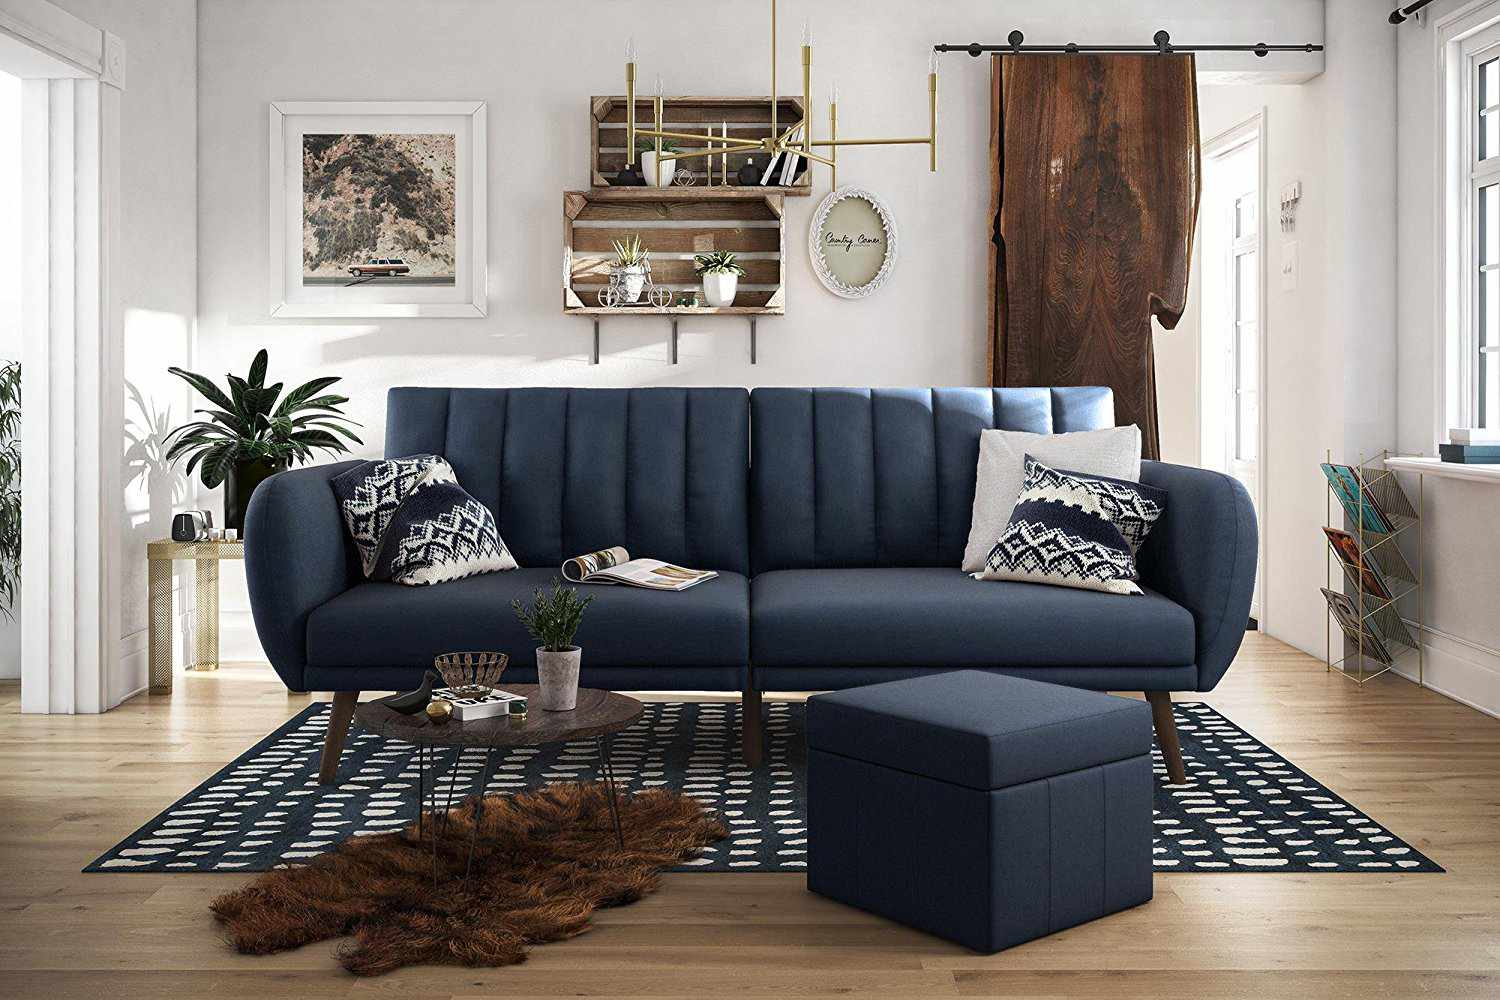 Image result for furniture in the living room